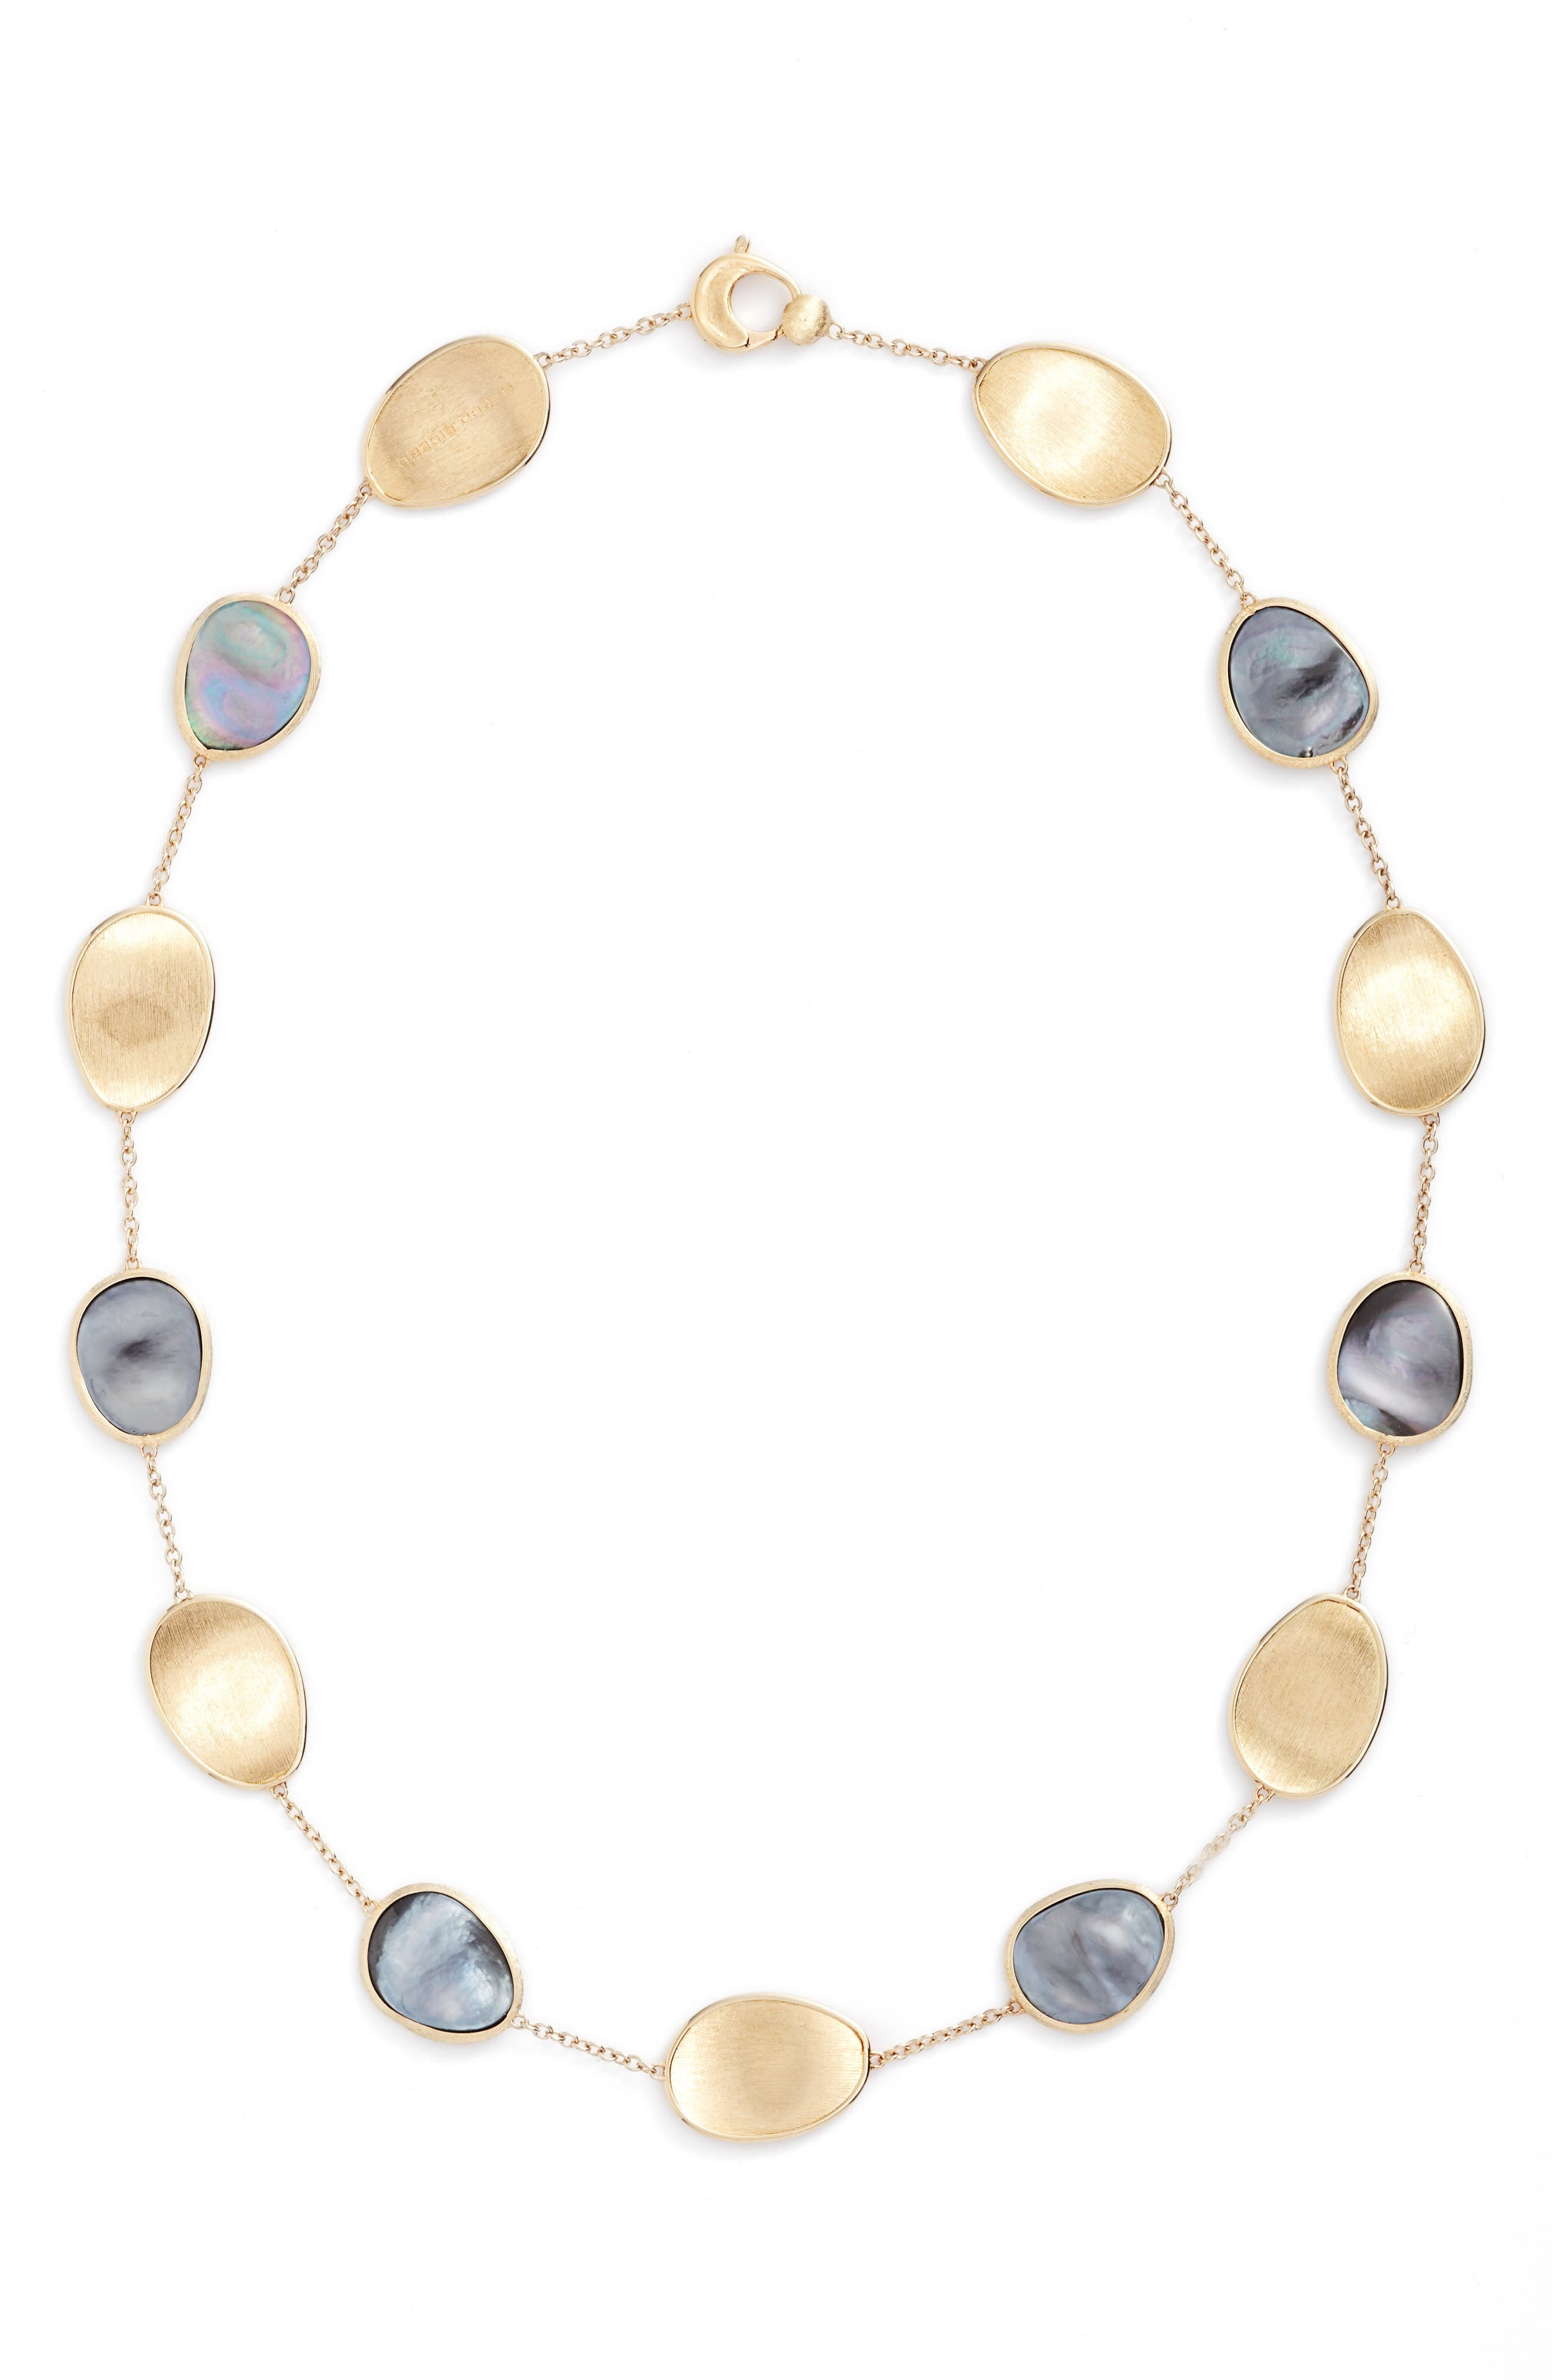 Alternate Image 1 Selected - Marco Bicego Lunaria Mother of Pearl Collar Necklace